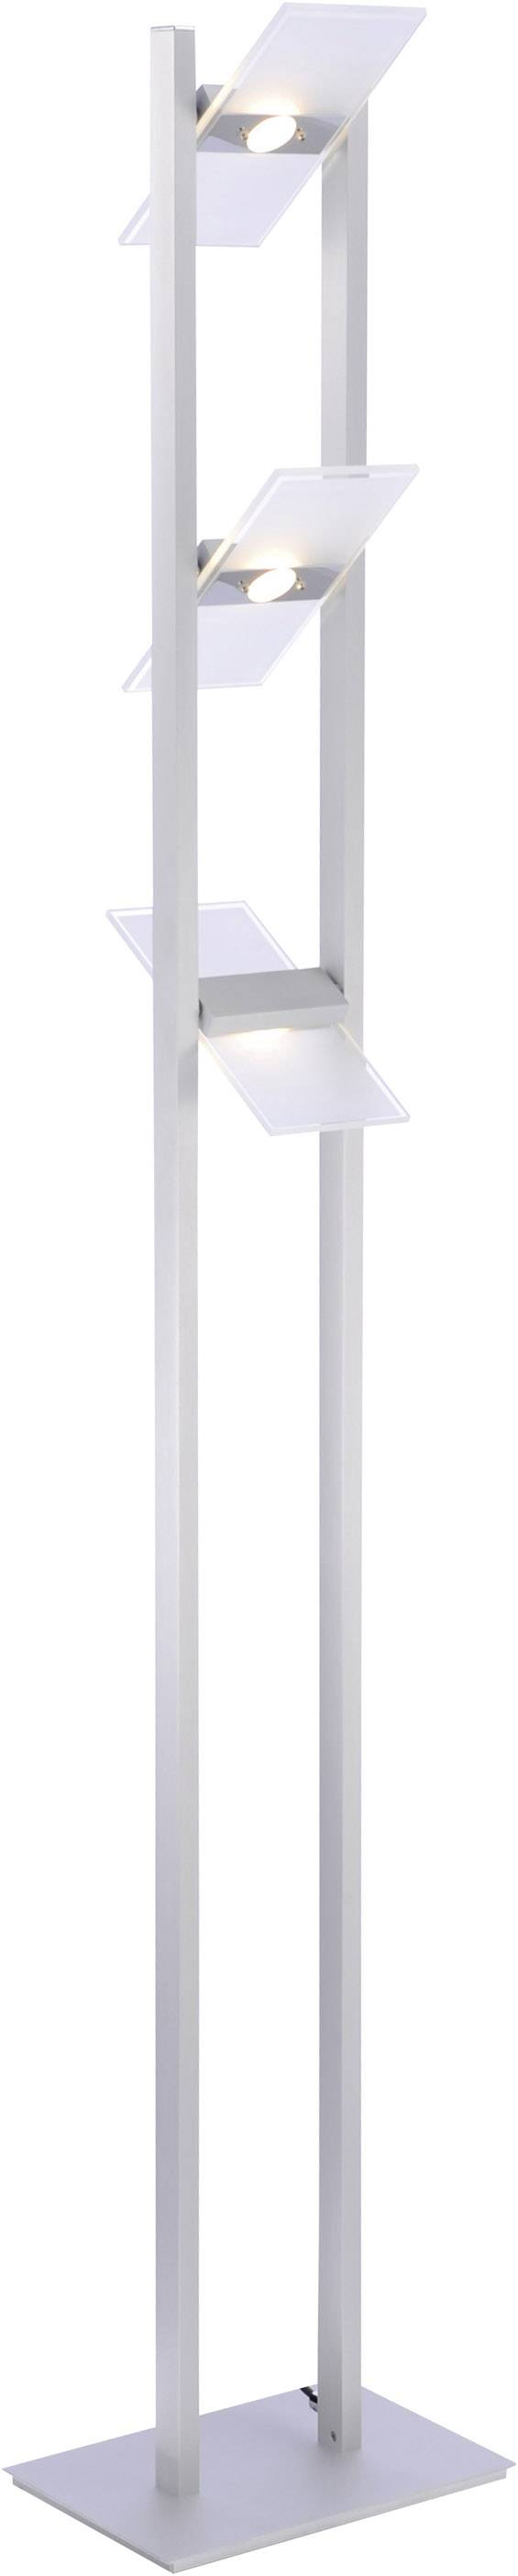 Stehlampe Dimmbar Led Led Stehlampe Dimmbar Günstig Online Kaufen Bei Conrad